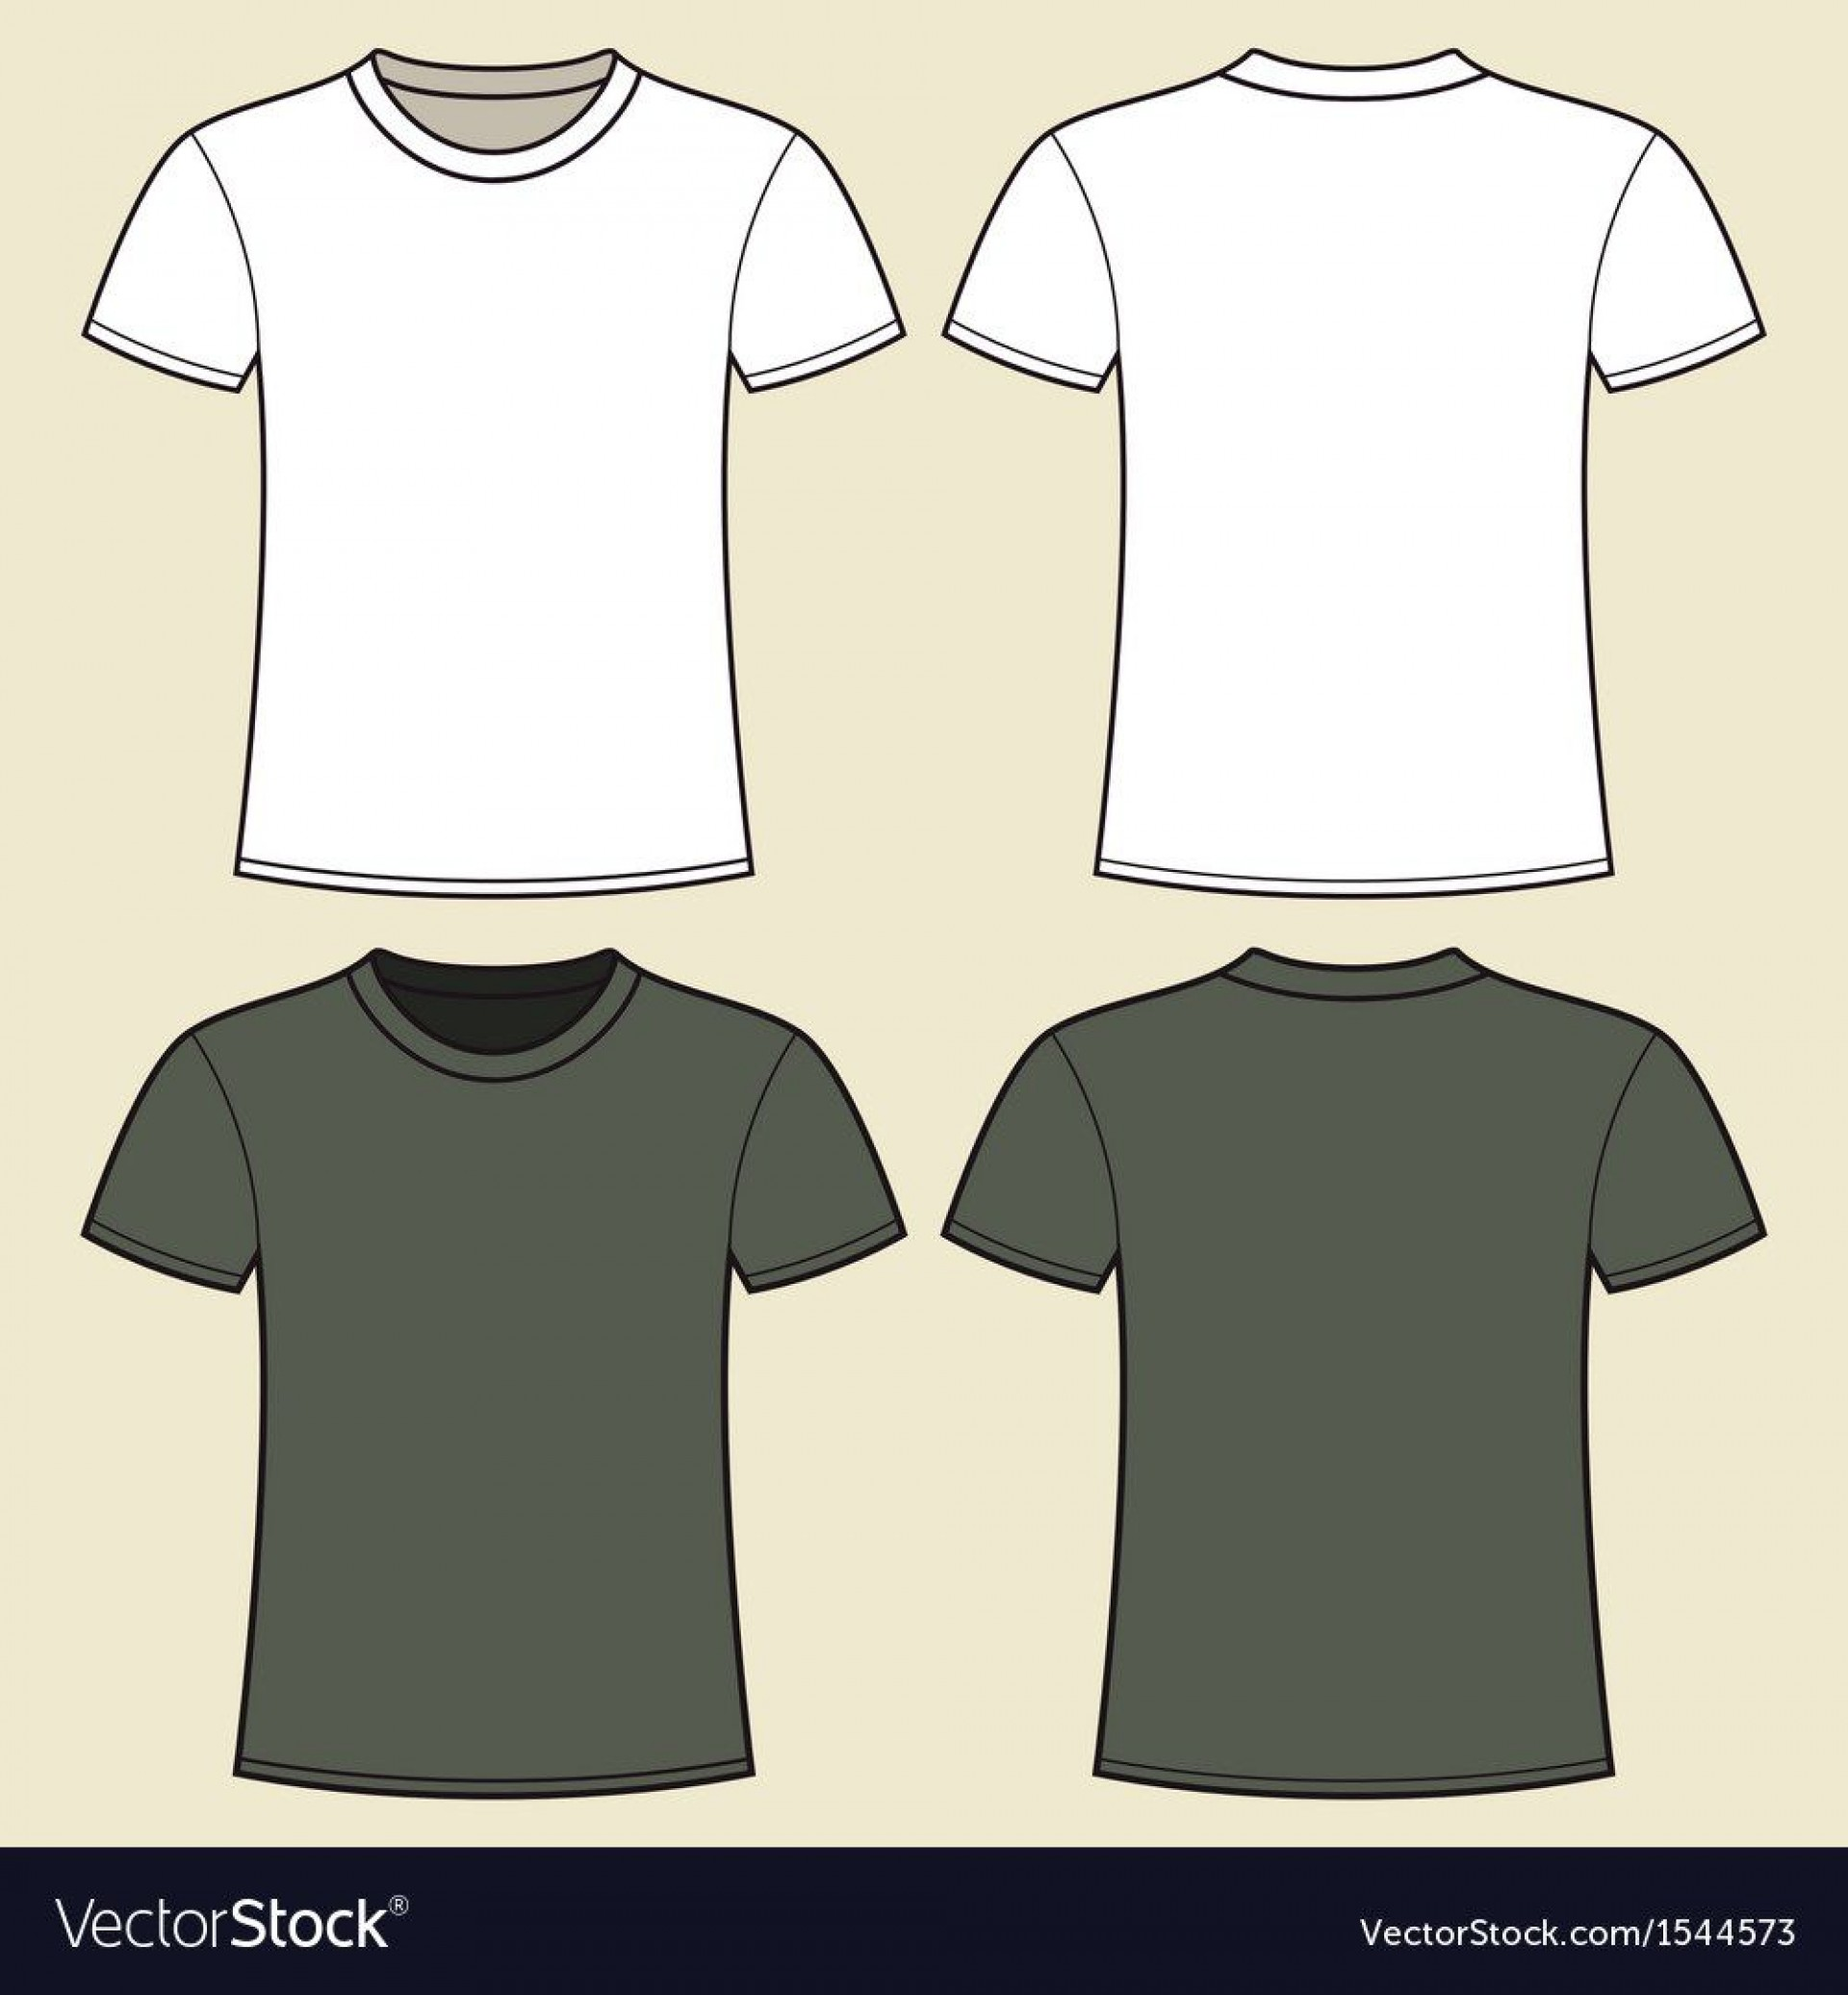 005 Surprising Tee Shirt Design Template Ai Picture 1920